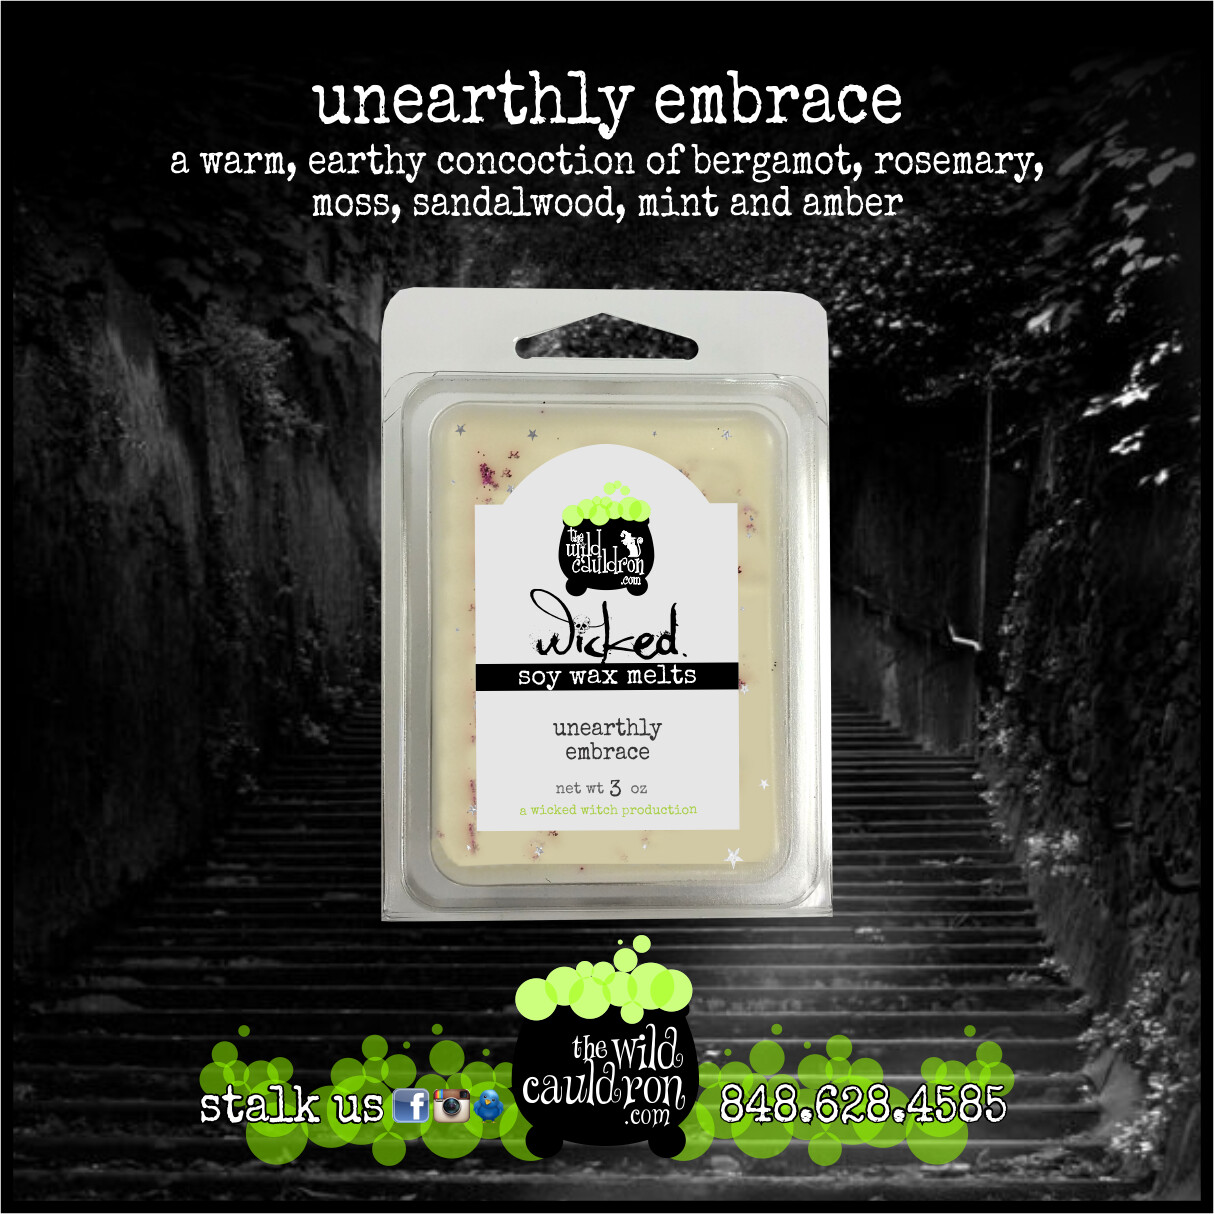 Unearthly Embrace Wicked Wax Melts